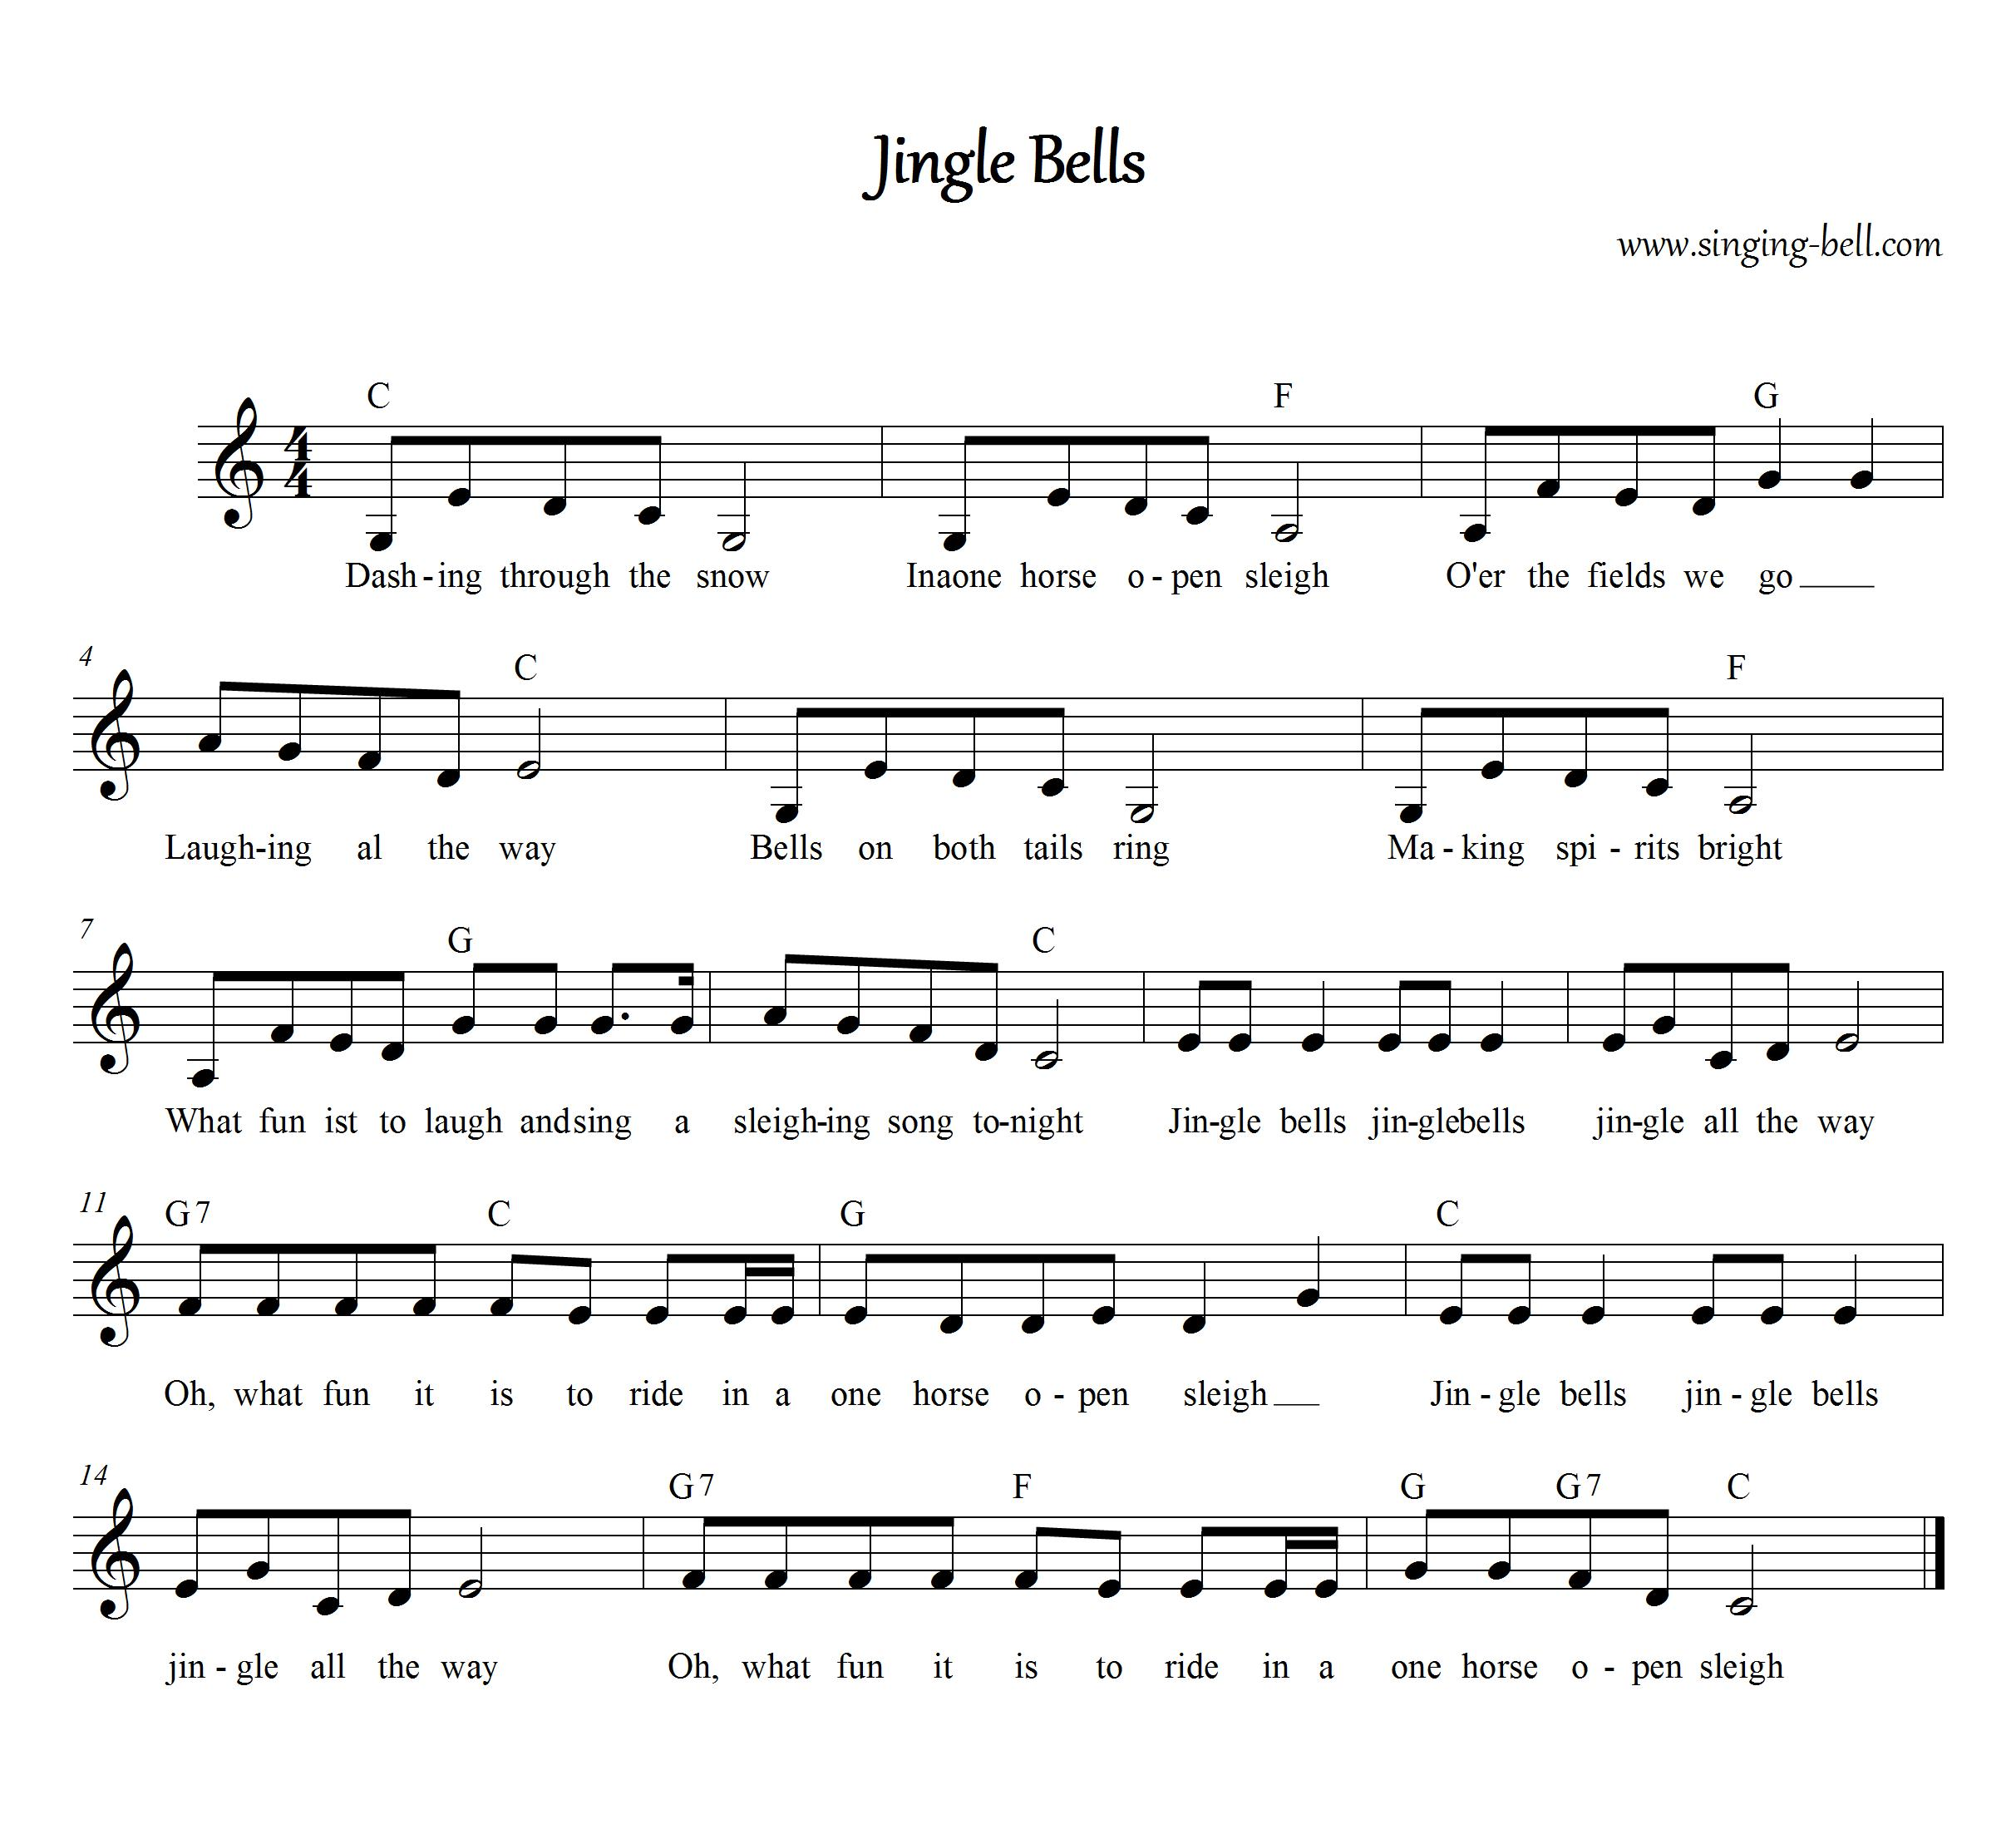 Free Christmas Carols > Jingle Bells - free mp3 audio song download